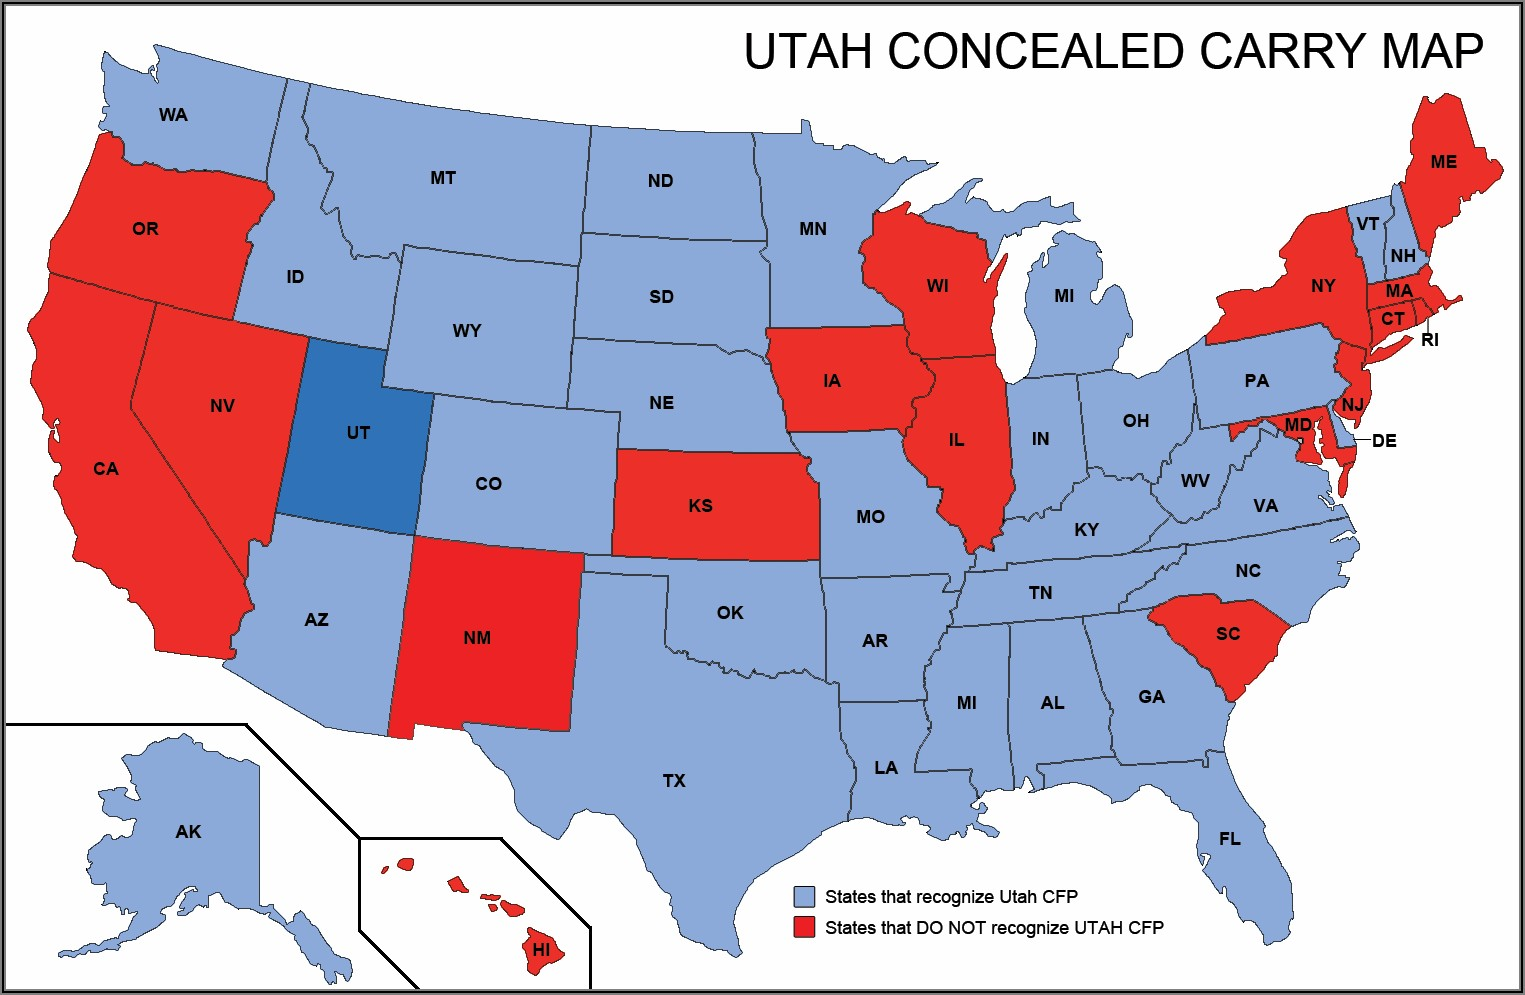 Utah Concealed Carry Reciprocity Map